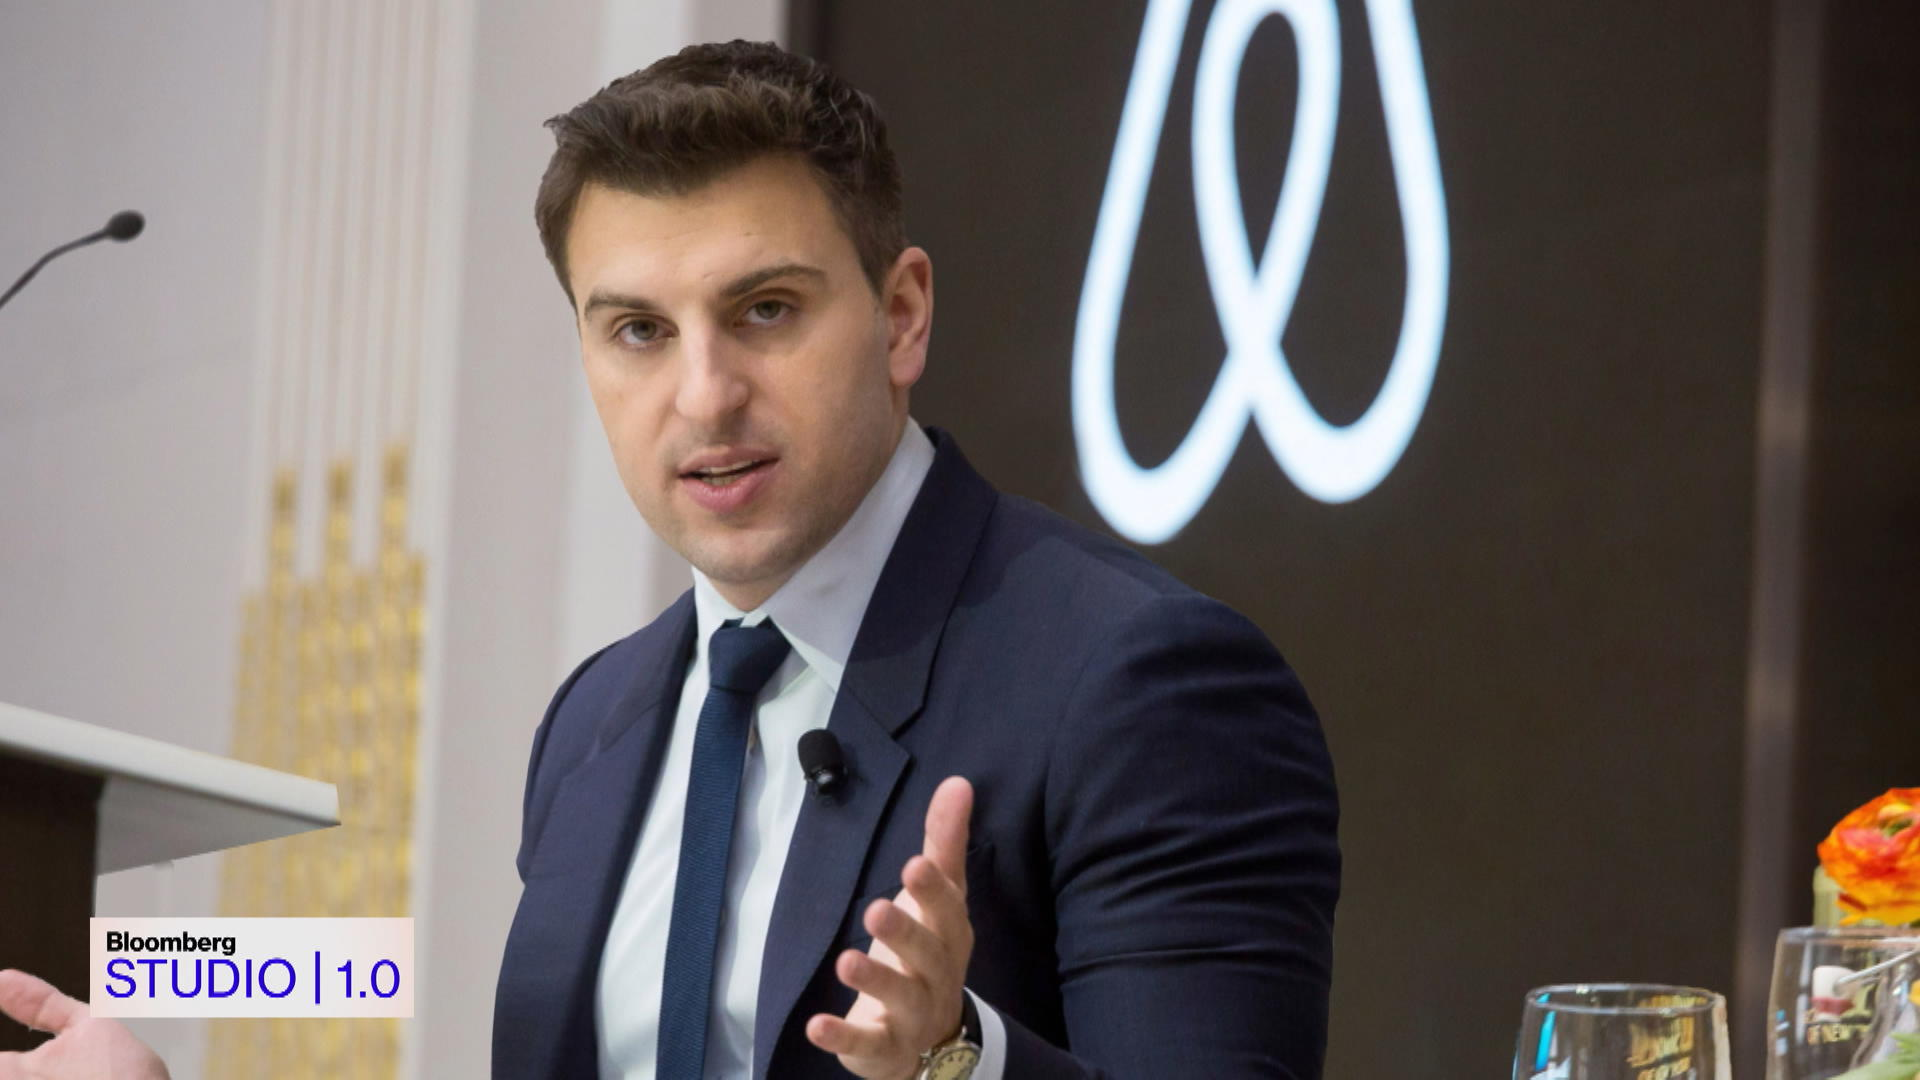 Airbnb CEO Brian Chesky on 'Bloomberg Studio 1.0'